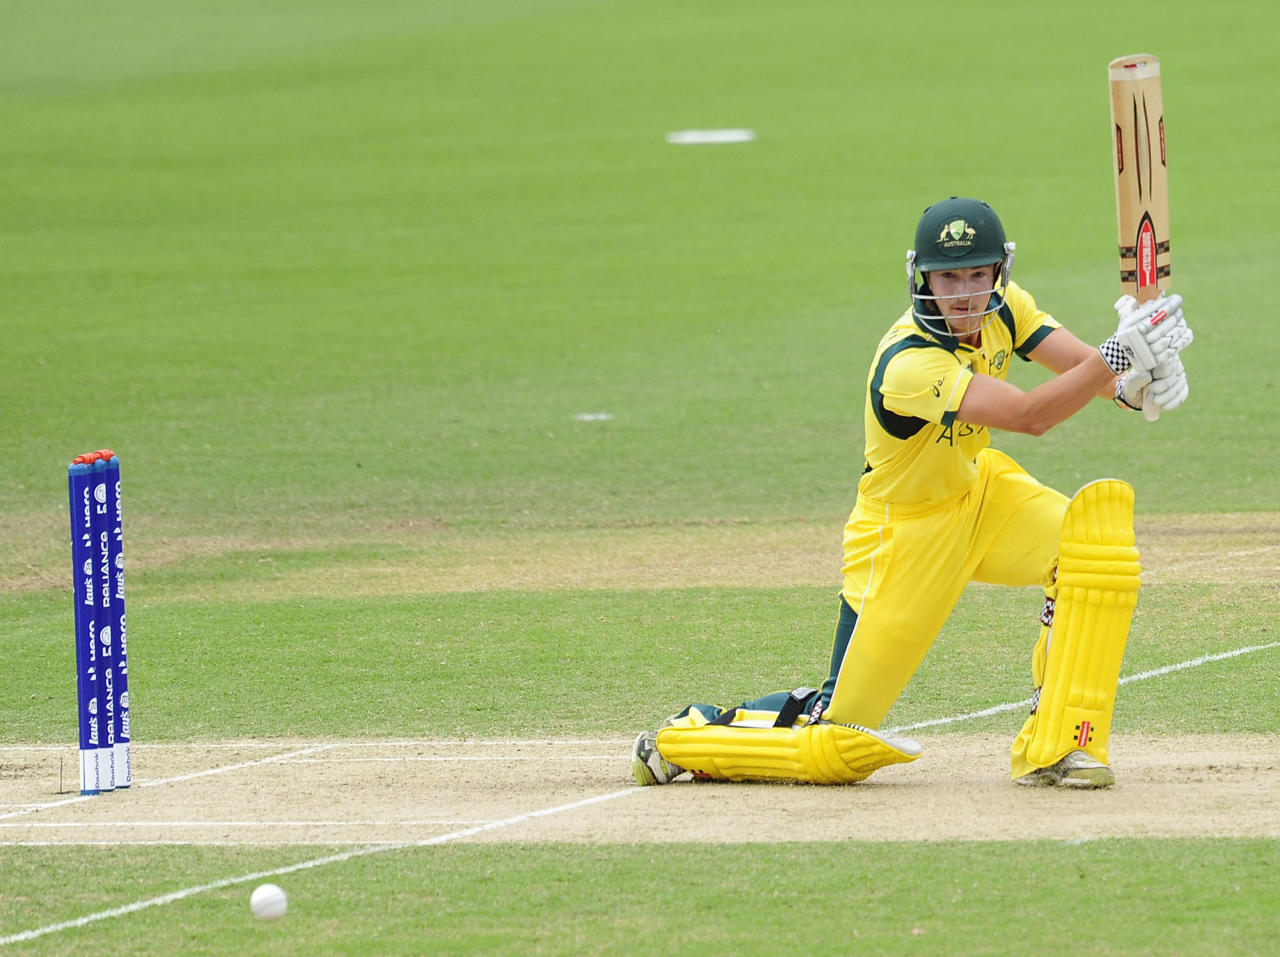 TOWNSVILLE, AUSTRALIA - AUGUST 26:  Meyrick Buchanan of Australia bats during the 2012 ICC U19 Cricket World Cup Final between Australia and India at Tony Ireland Stadium on August 26, 2012 in Townsville, Australia.  (Photo by Ian Hitchcock-ICC/Getty Images)